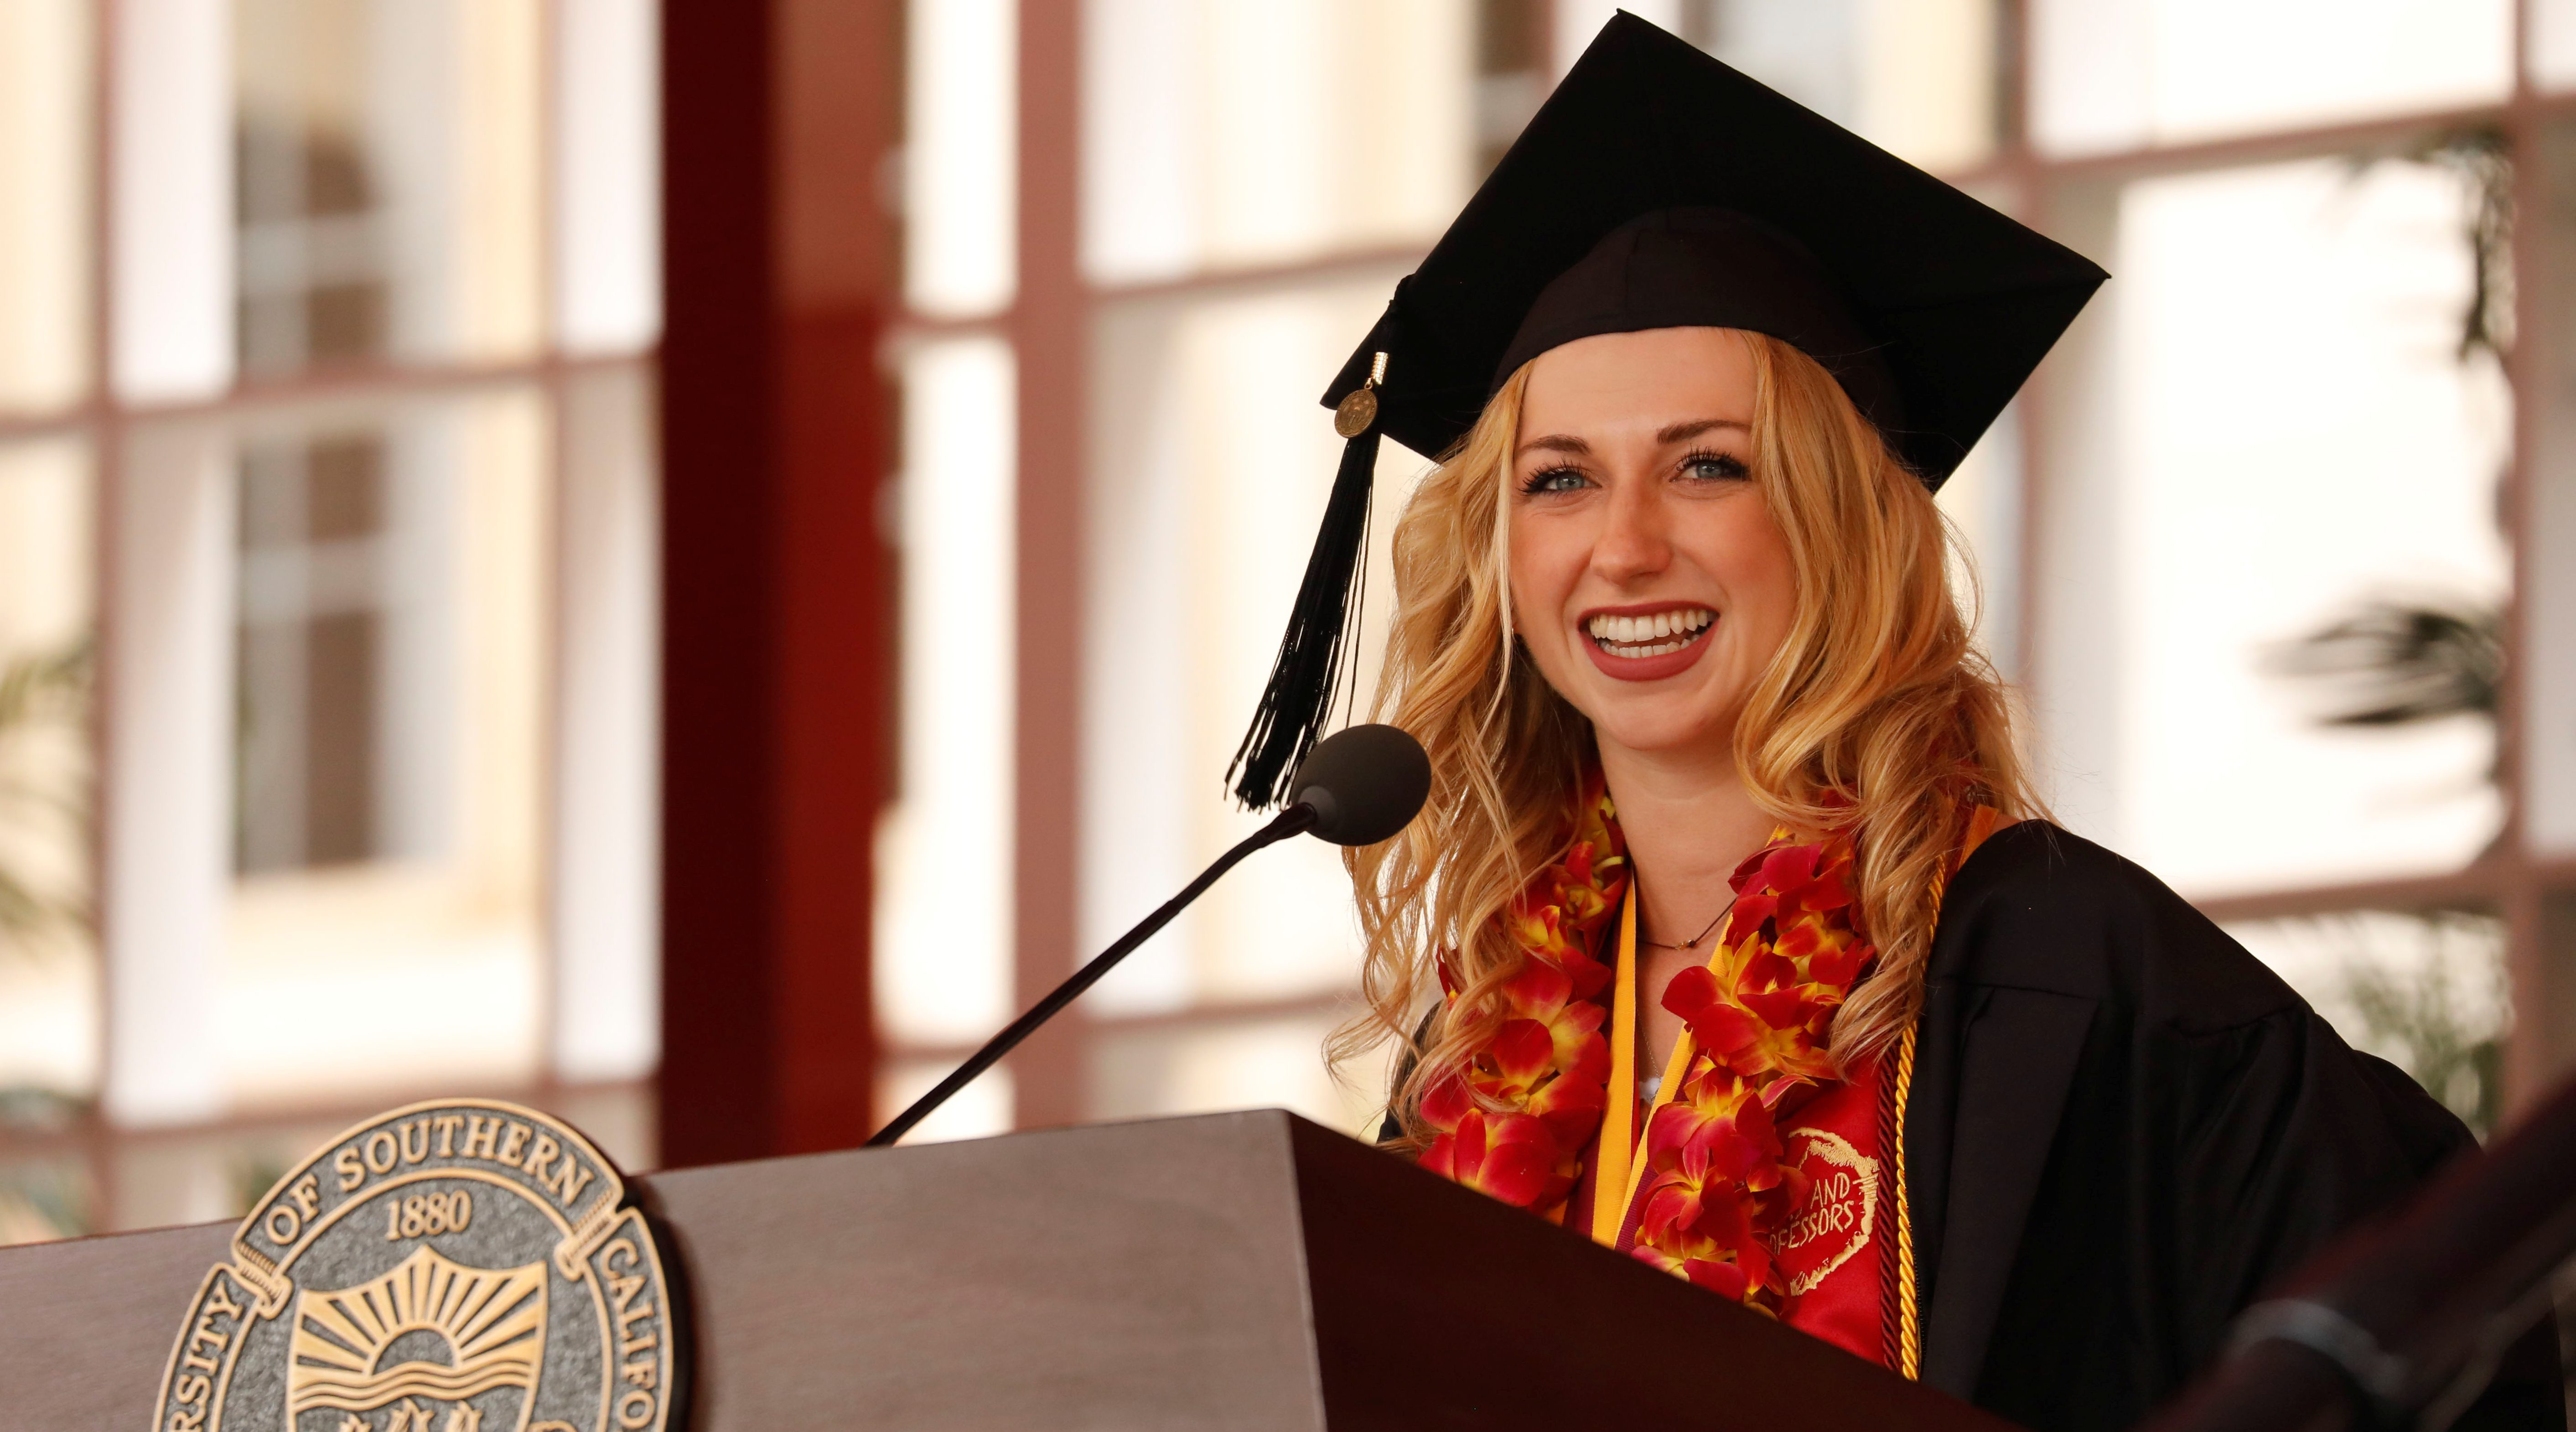 Valedictorian Cooper Nelson speaks during the commencement ceremony at the University of Southern California.